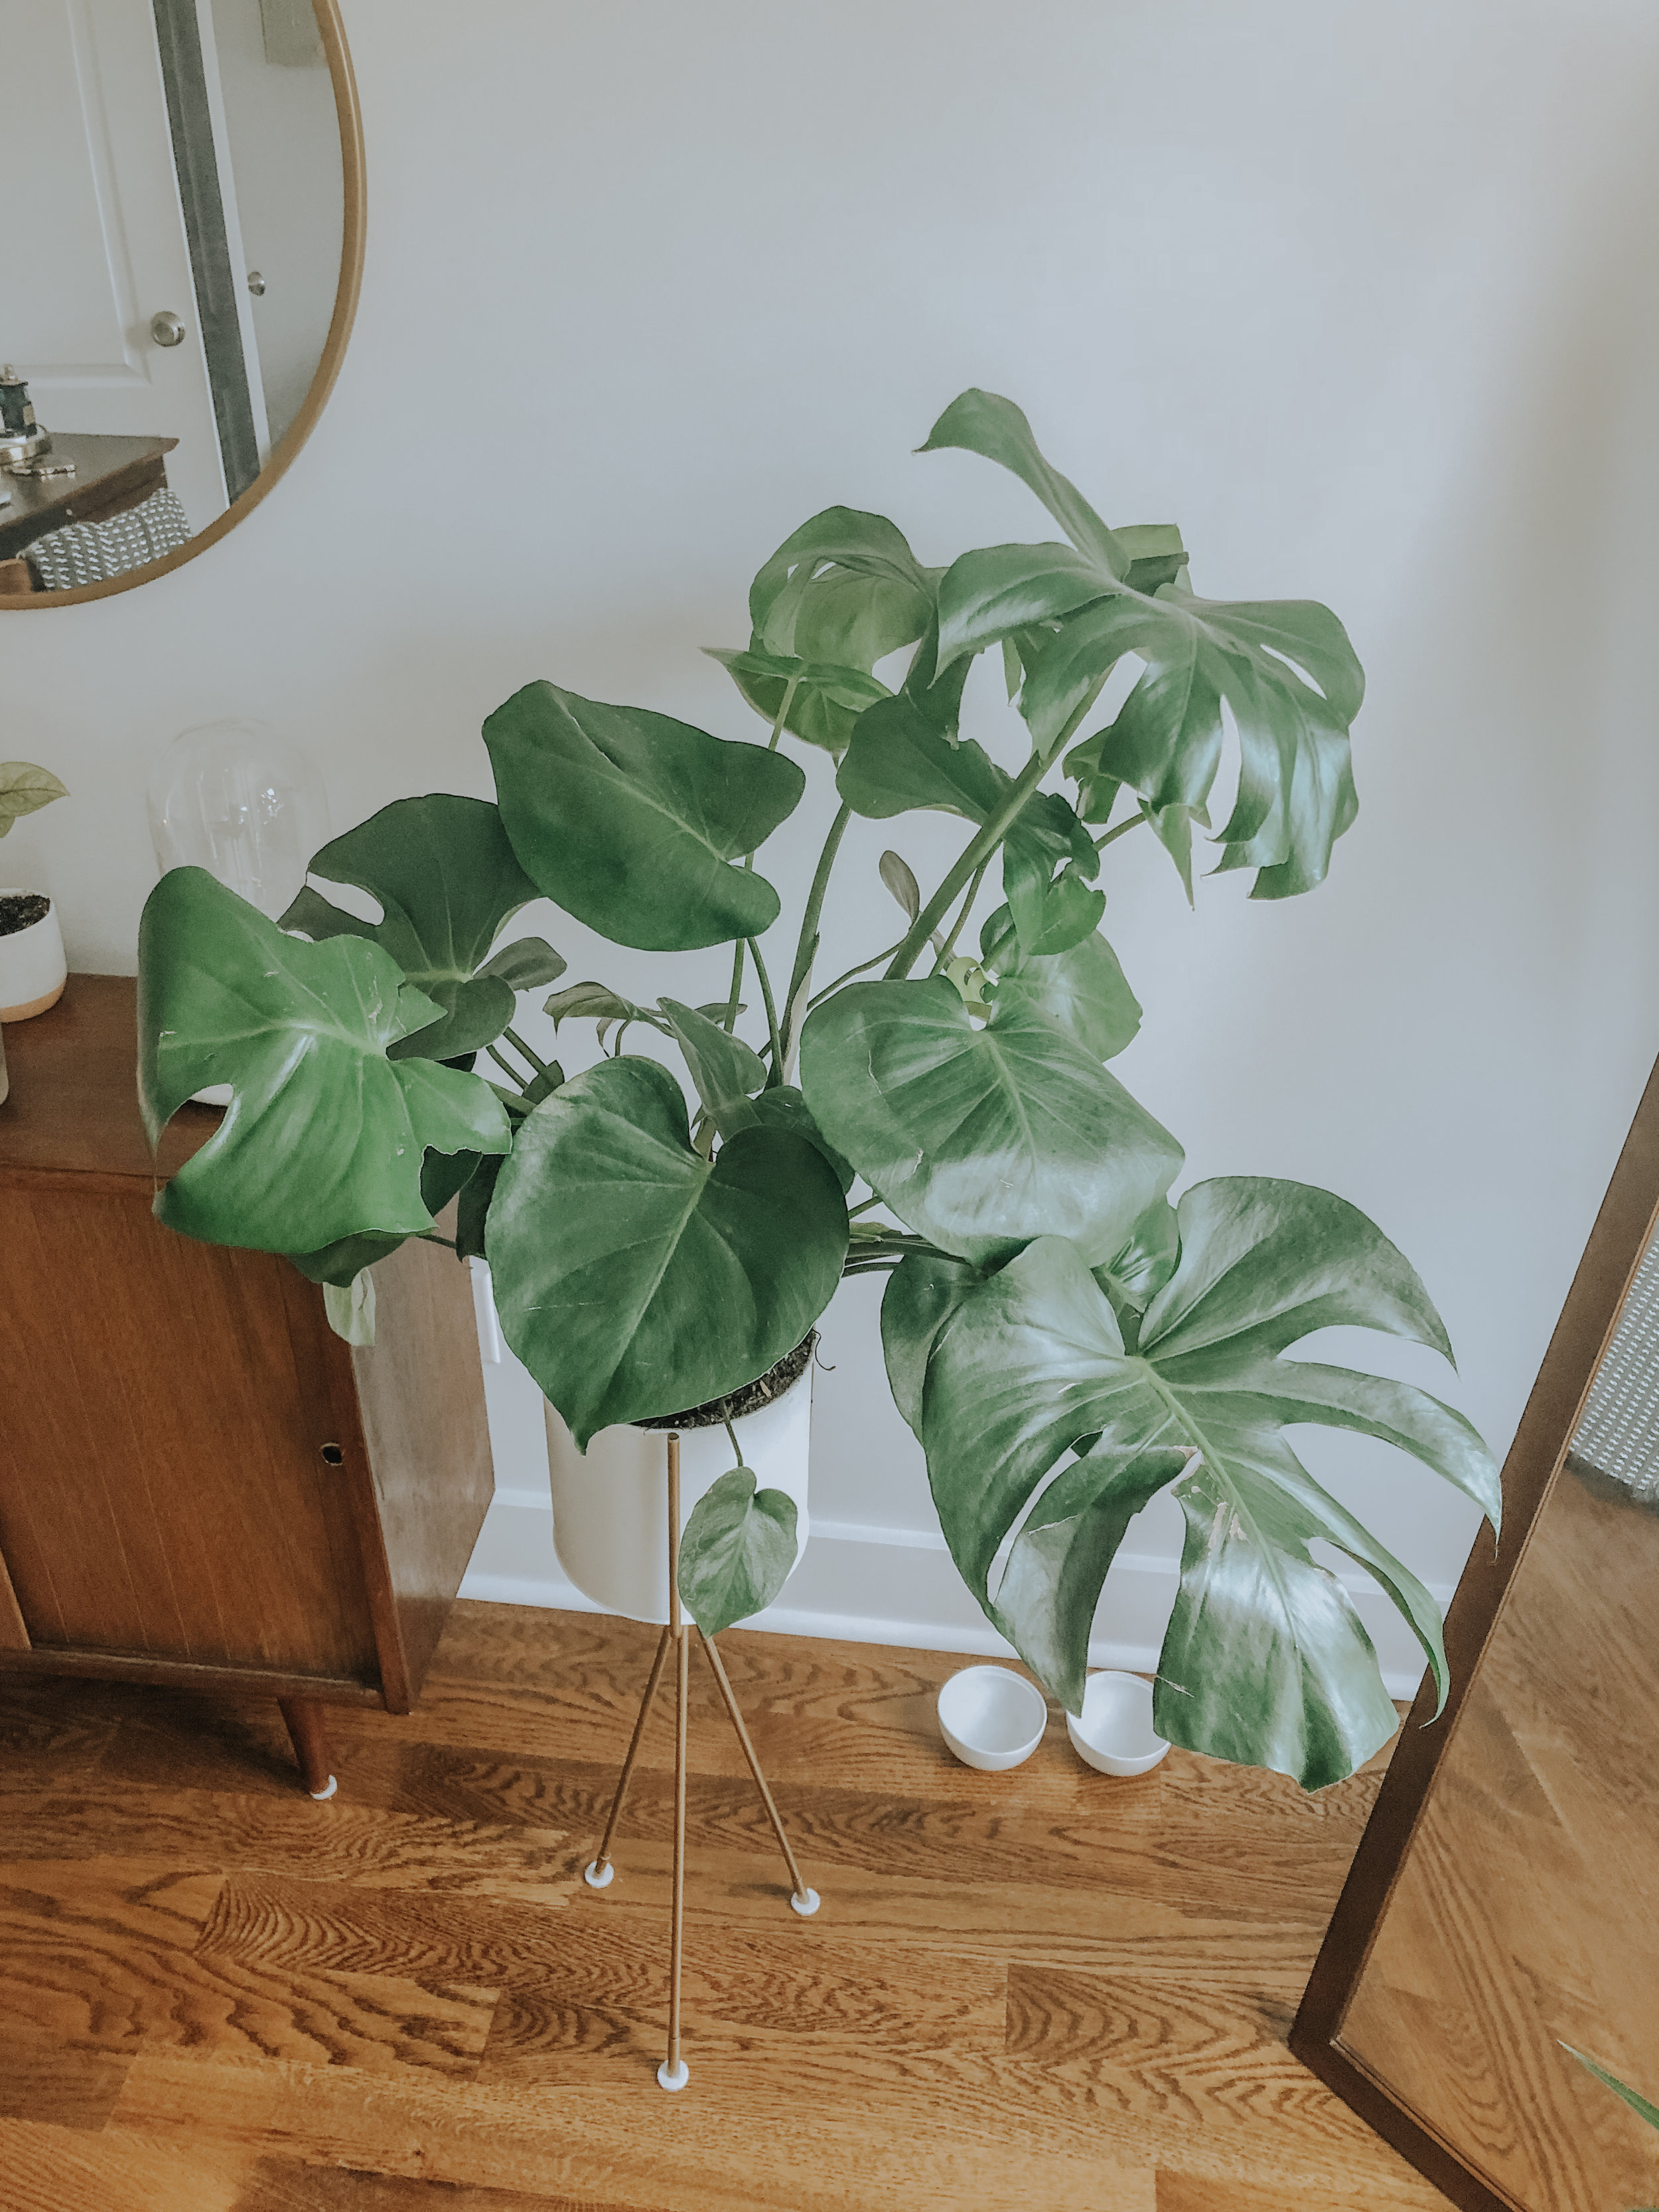 My favorite plant, the gorgeous Monstera.